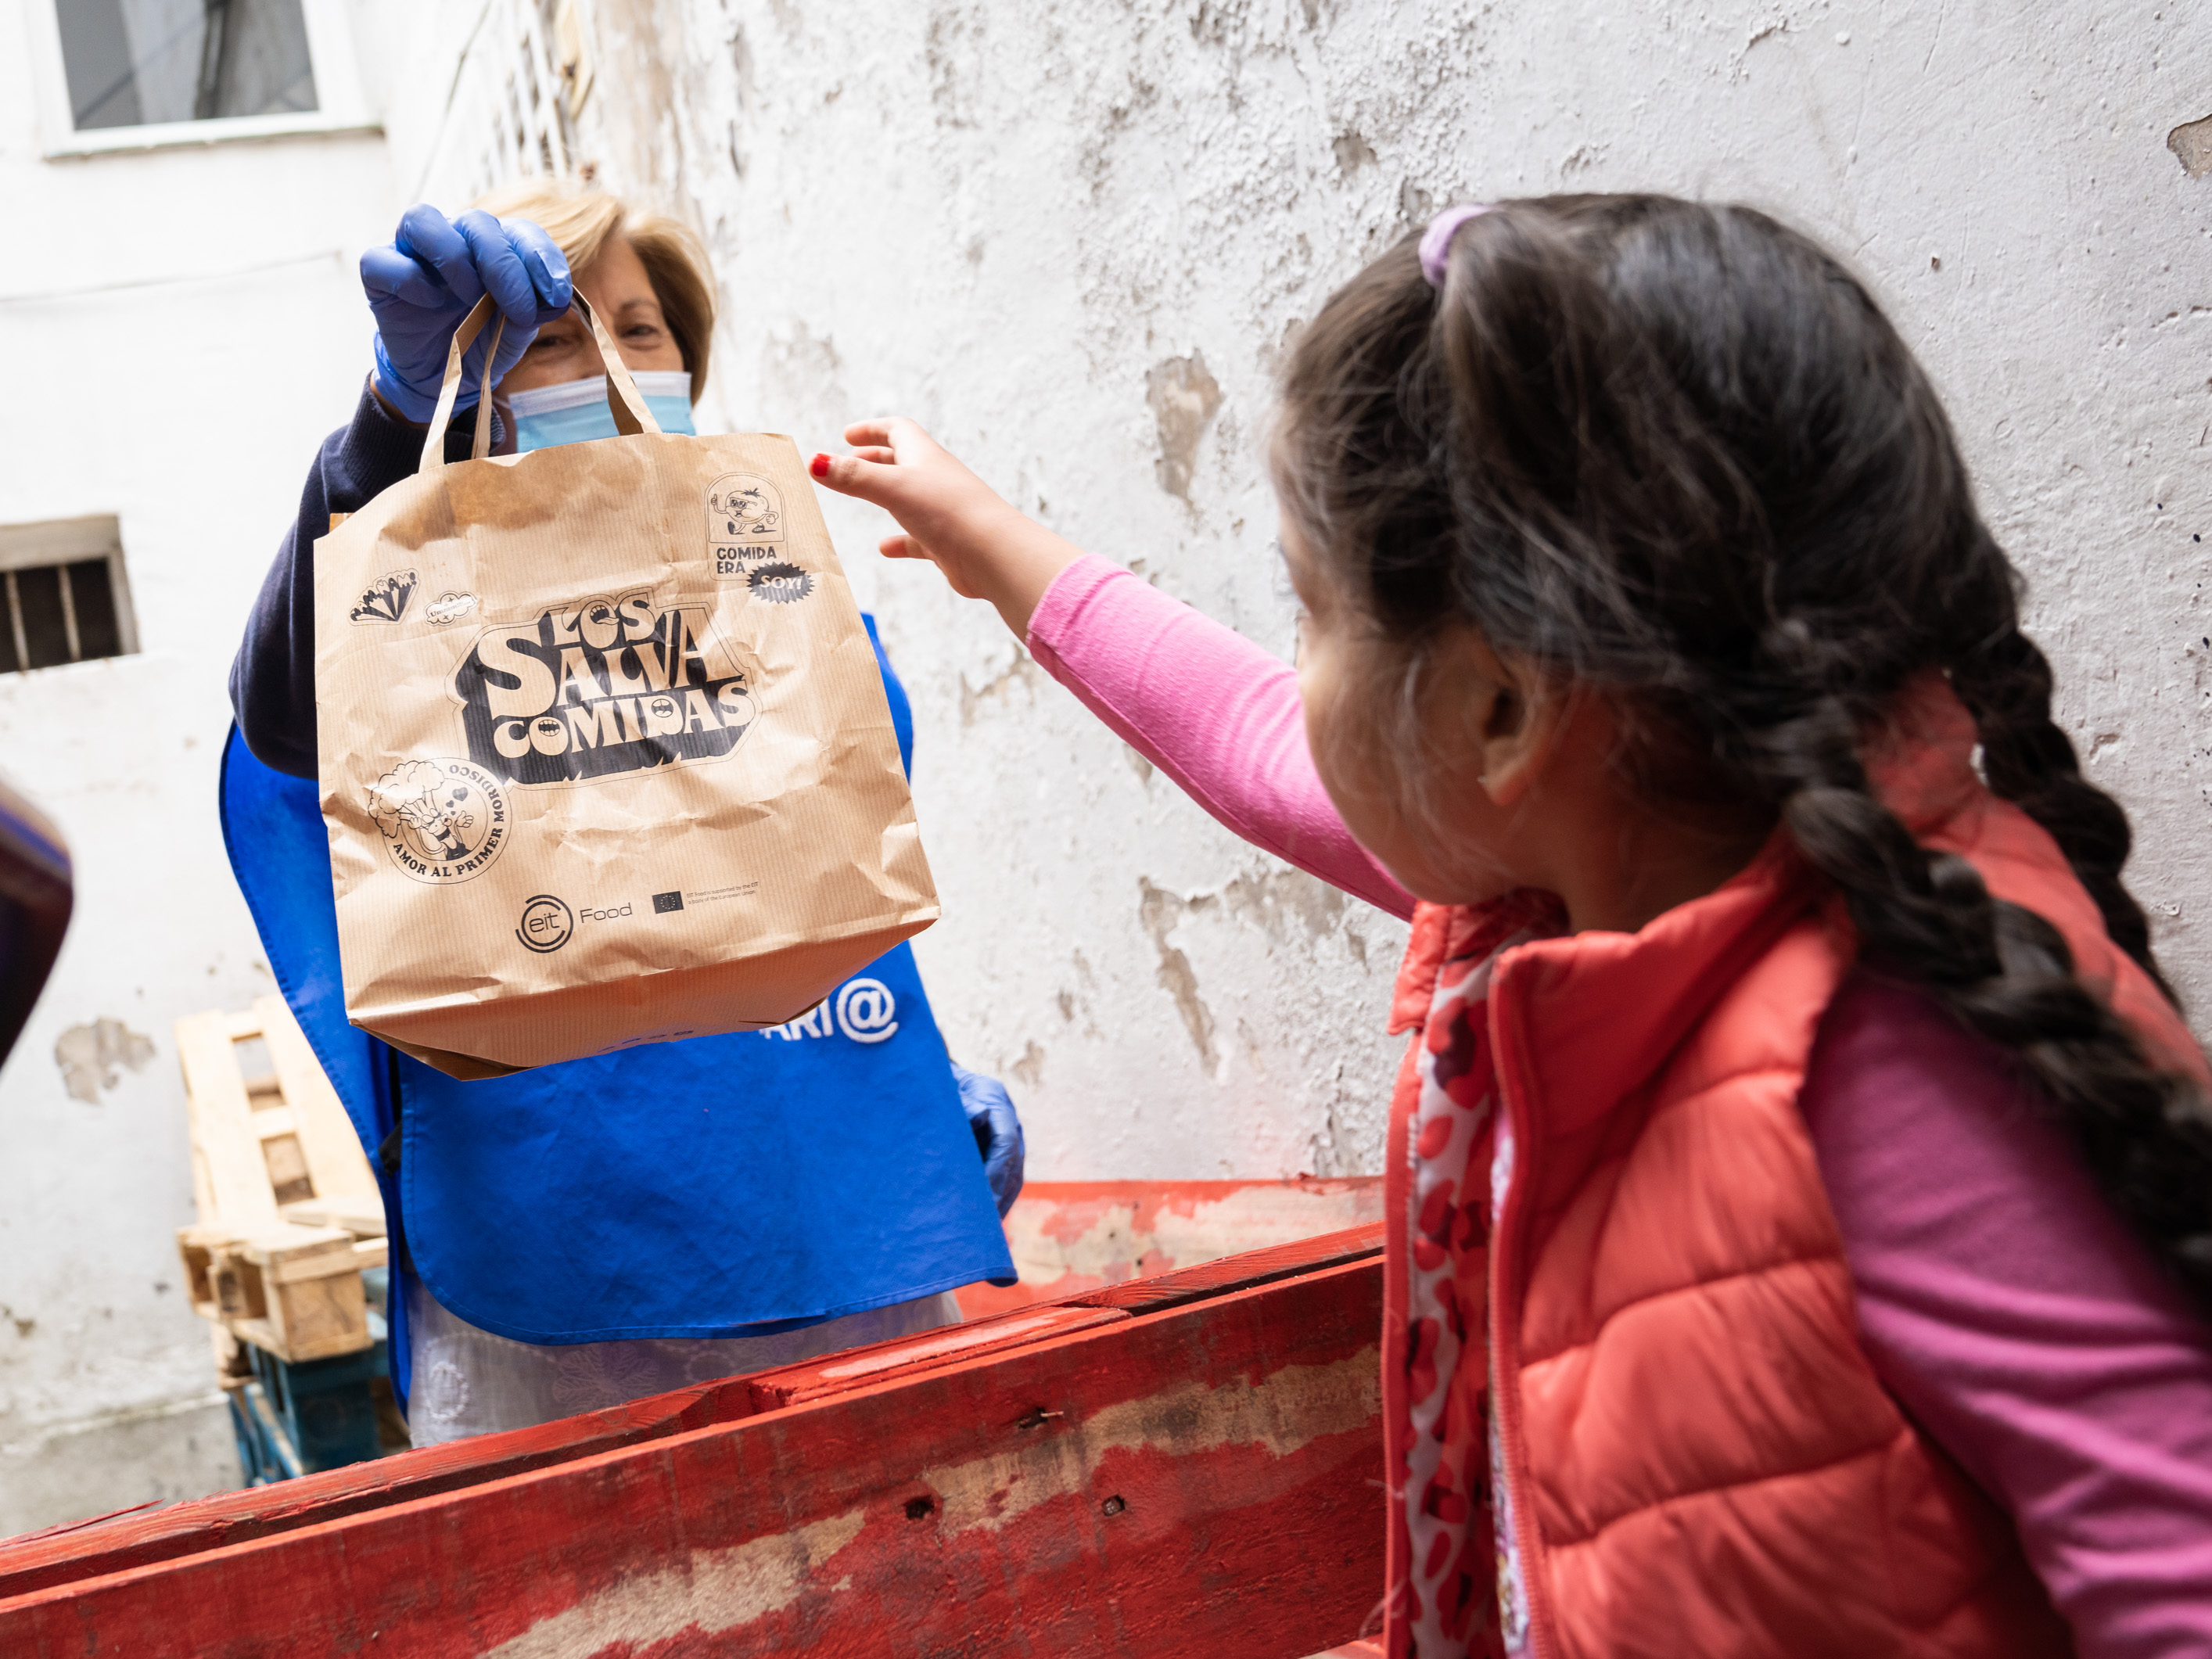 The 'Los Salvacomidas' initiative ends tomorrow after delivering 60,000 healthy children's meals and recovering 3,000 kilograms of food